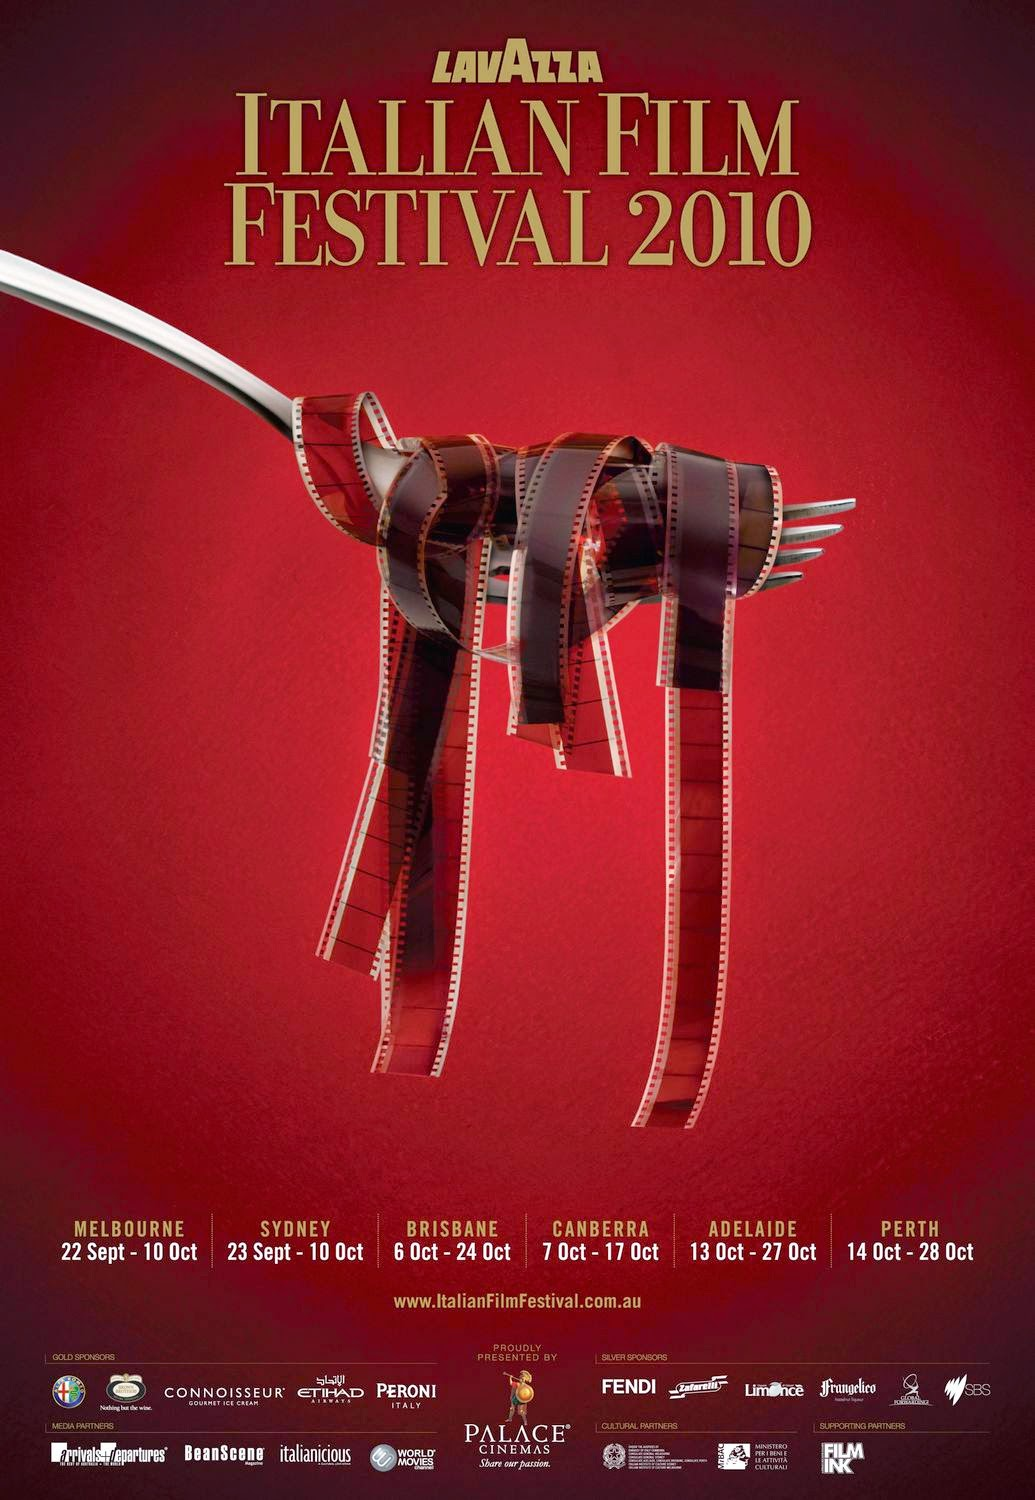 It Is Quite Common To Not Have Much Text In Film Festival Posters On The Cover